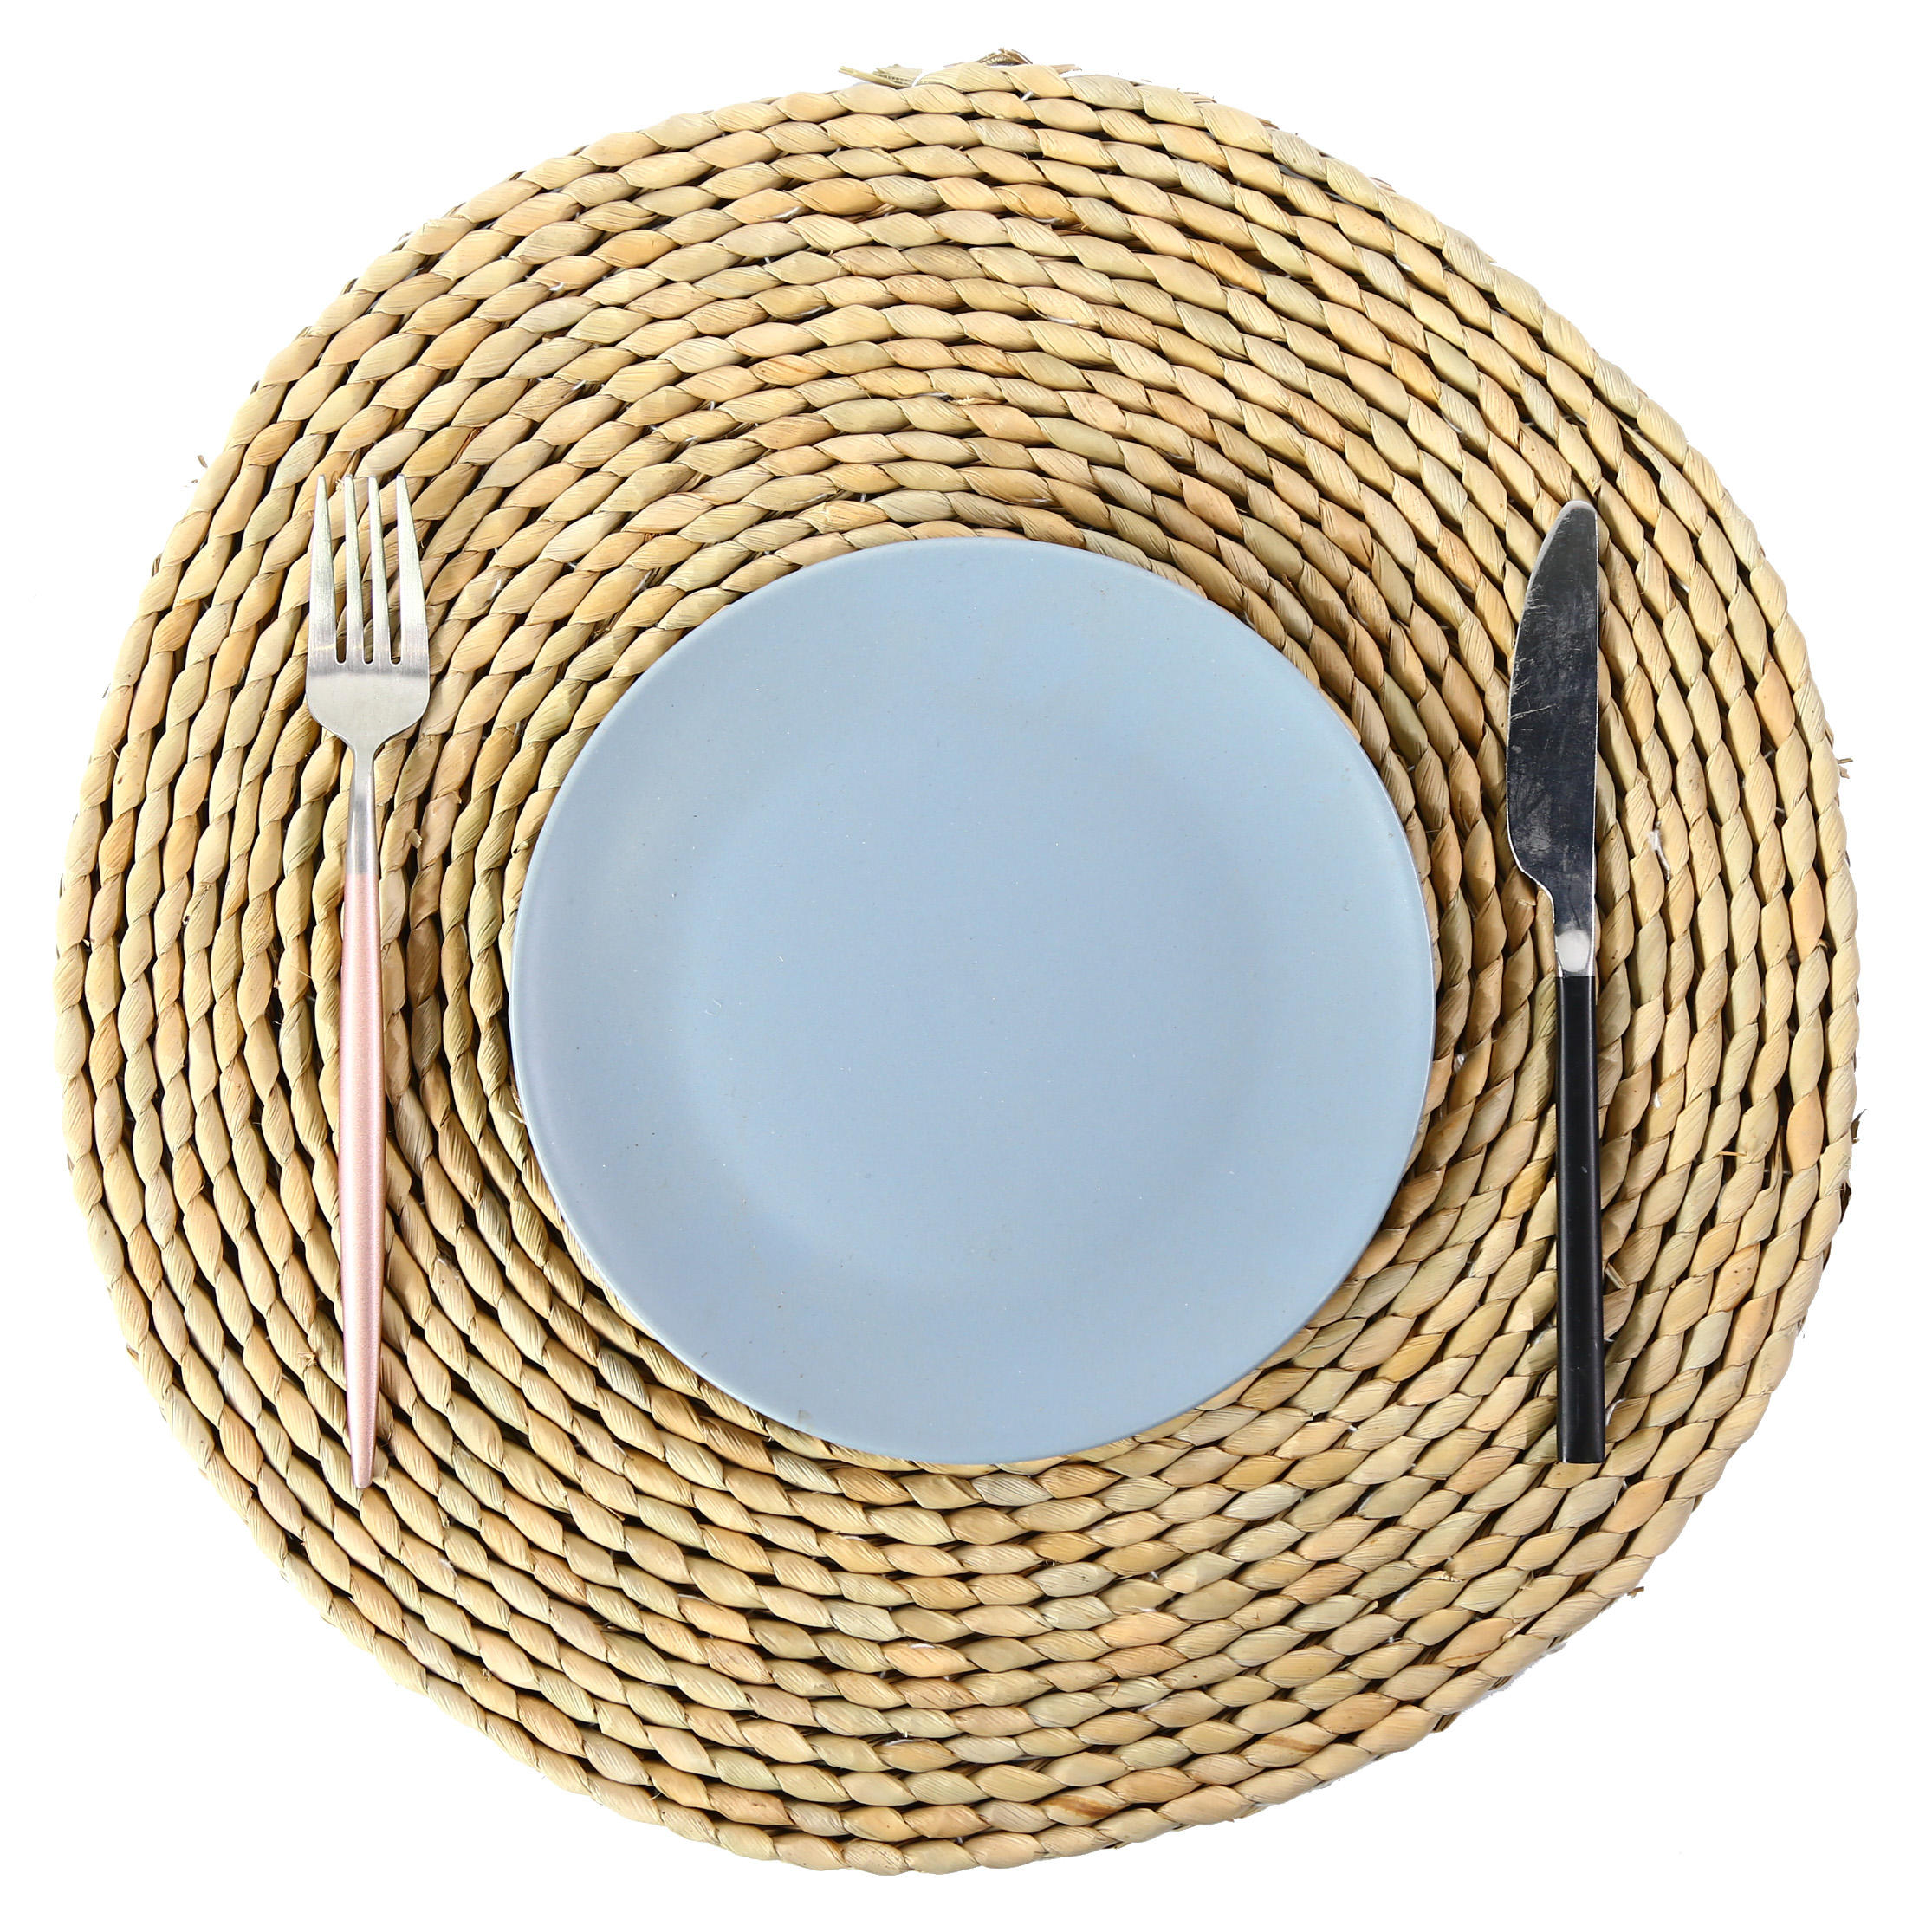 Tabletex 2020 New Design Natural type Placemat, handmade straw woven round Table Mat